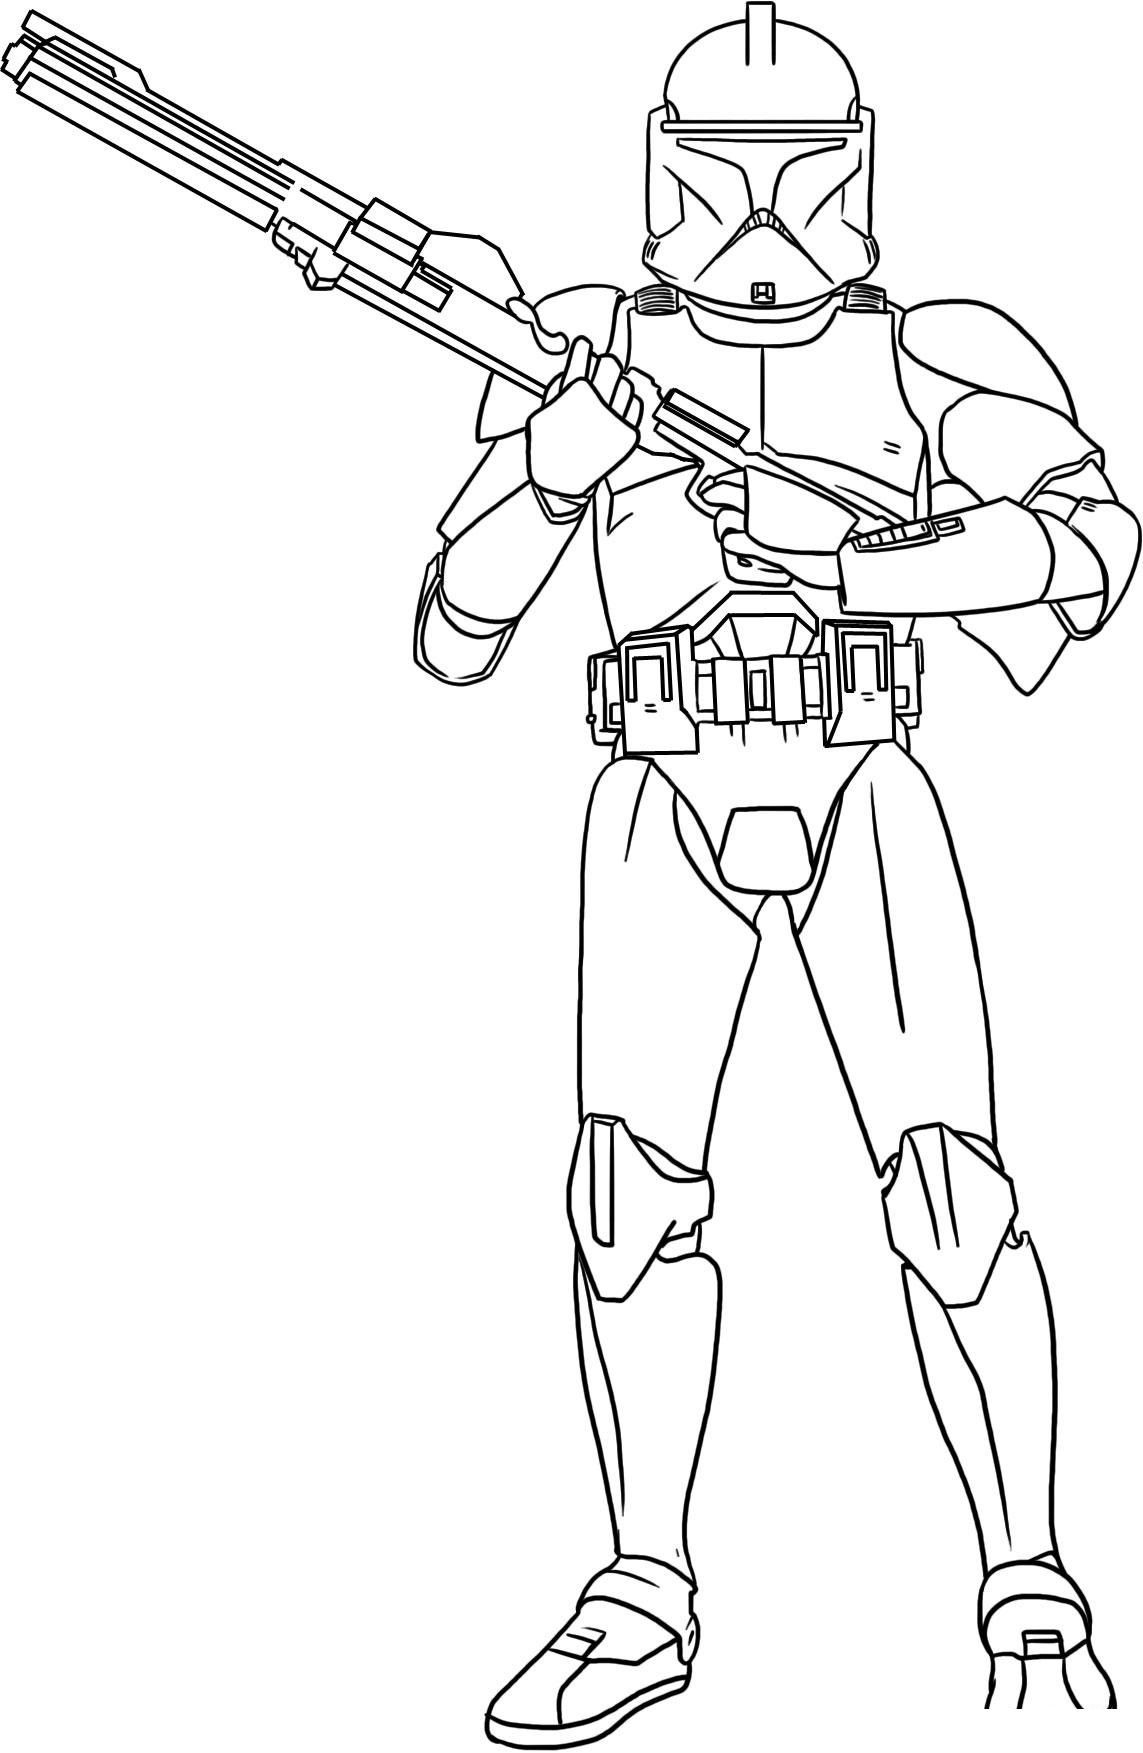 clone trooper colouring pages clone soldiers running coloring pages hellokidscom pages trooper colouring clone